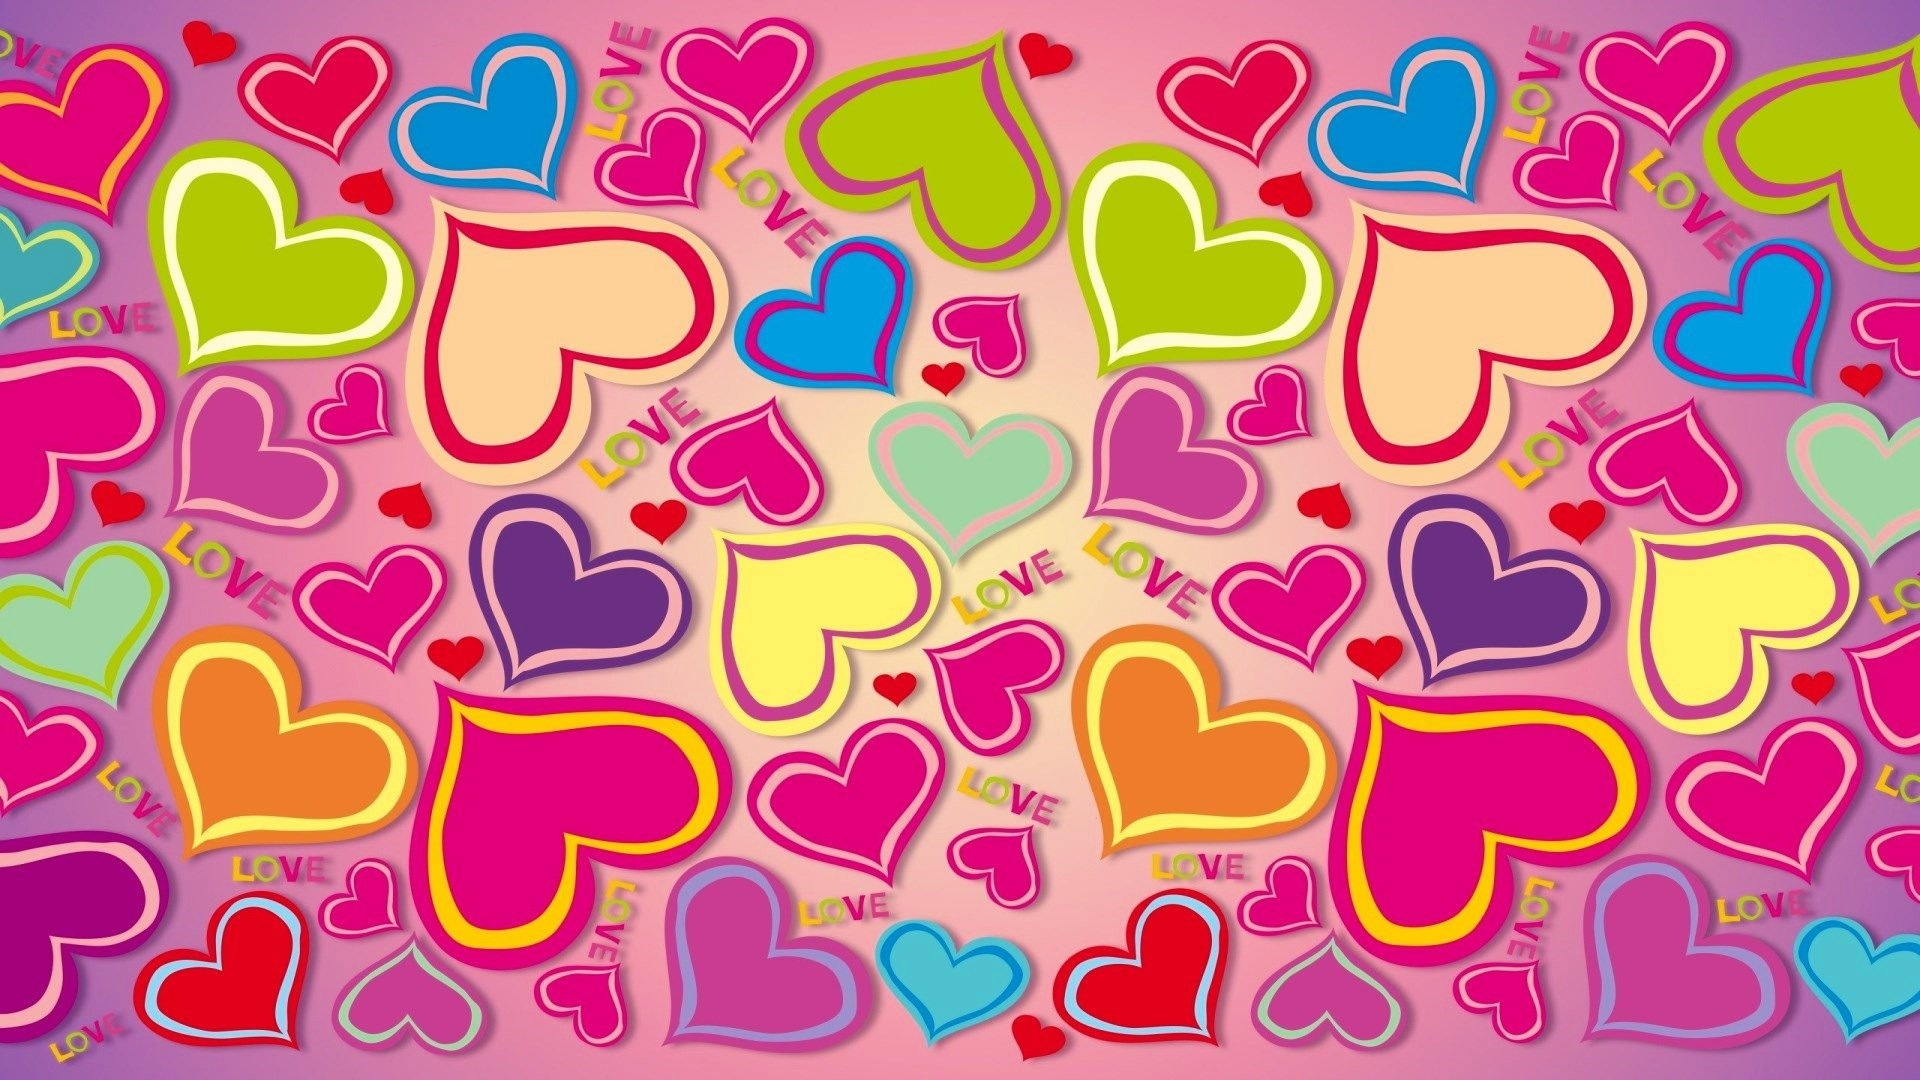 Colorful Hearts HD Wallpaper